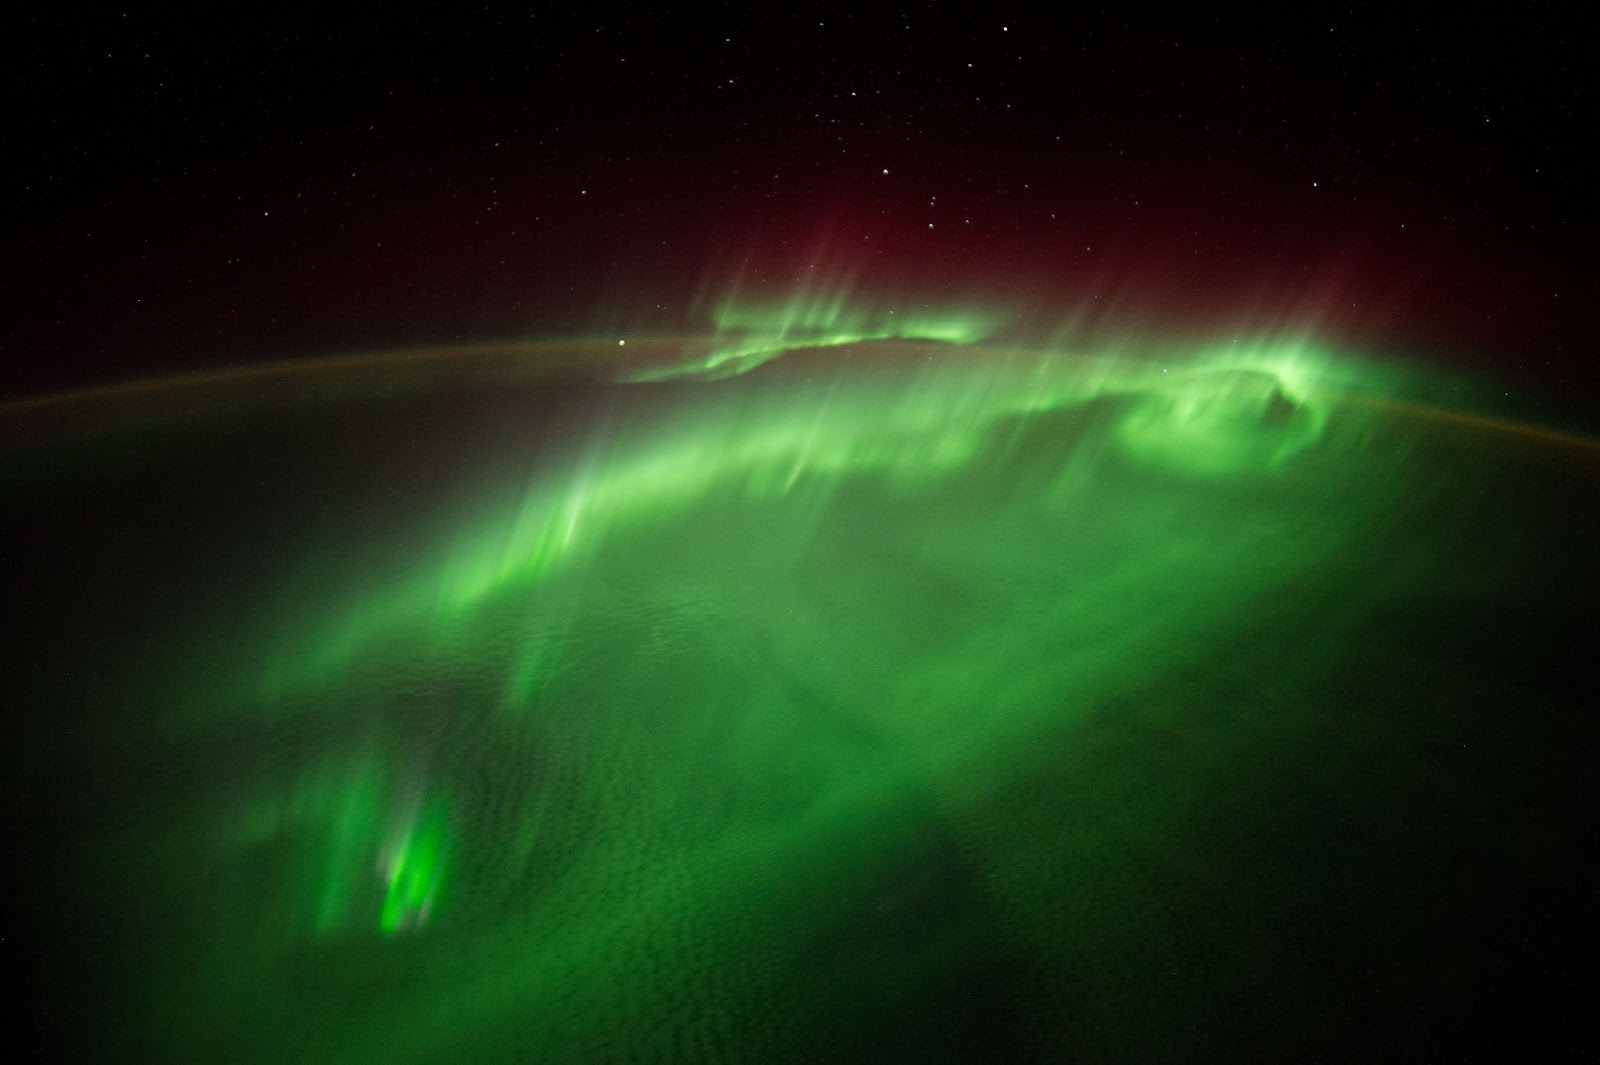 "Flying Through an Aurora Flying Through an Aurora   European Space Agency astronaut Alexander Gerst posted this photograph taken from the International Space Station to social media on Aug. 29, 2014, writing, ""words can't describe how it feels flying through an #aurora. I wouldn't even know where to begin….""  Crewmembers on the space station photograph the Earth from their unique point of view located 200 miles above the surface. Photographs record how the planet is changing over time, from human-caused changes like urban growth and reservoir construction, to natural dynamic events such as hurricanes, floods and volcanic eruptions. Crewmembers have been photographing Earth from space since the early Mercury missions beginning in 1961. The continuous images taken from the space station ensure this record remains unbroken.  On Tuesday, Sept. 9 aboard the space station, cosmonaut Max Suraev of Roscosmos takes the helm when Expedition 40 Commander Steve Swanson hands over control during a Change of Command Ceremony at 5:15 p.m. EDT. Suraev will lead Expedition 41 and stay in orbit until November with Gerst and NASA astronaut Reid Wiseman. Soyuz Commander Alexander Skvortsov, Swanson and Flight Engineer Oleg Artemyev will complete their mission Wednesday, Sept. 10 at 7:01 p.m. when they undock in their Soyuz TMA-12M spacecraft from the Poisk docking compartment for a parachute-assisted landing on the steppe of Kazakhstan a little less than 3.5 hours later.  Image Credit: NASA/ESA/Alexander Gerst Explanation from: http://www.nasa.gov/content/flying-through-an-aurora/"